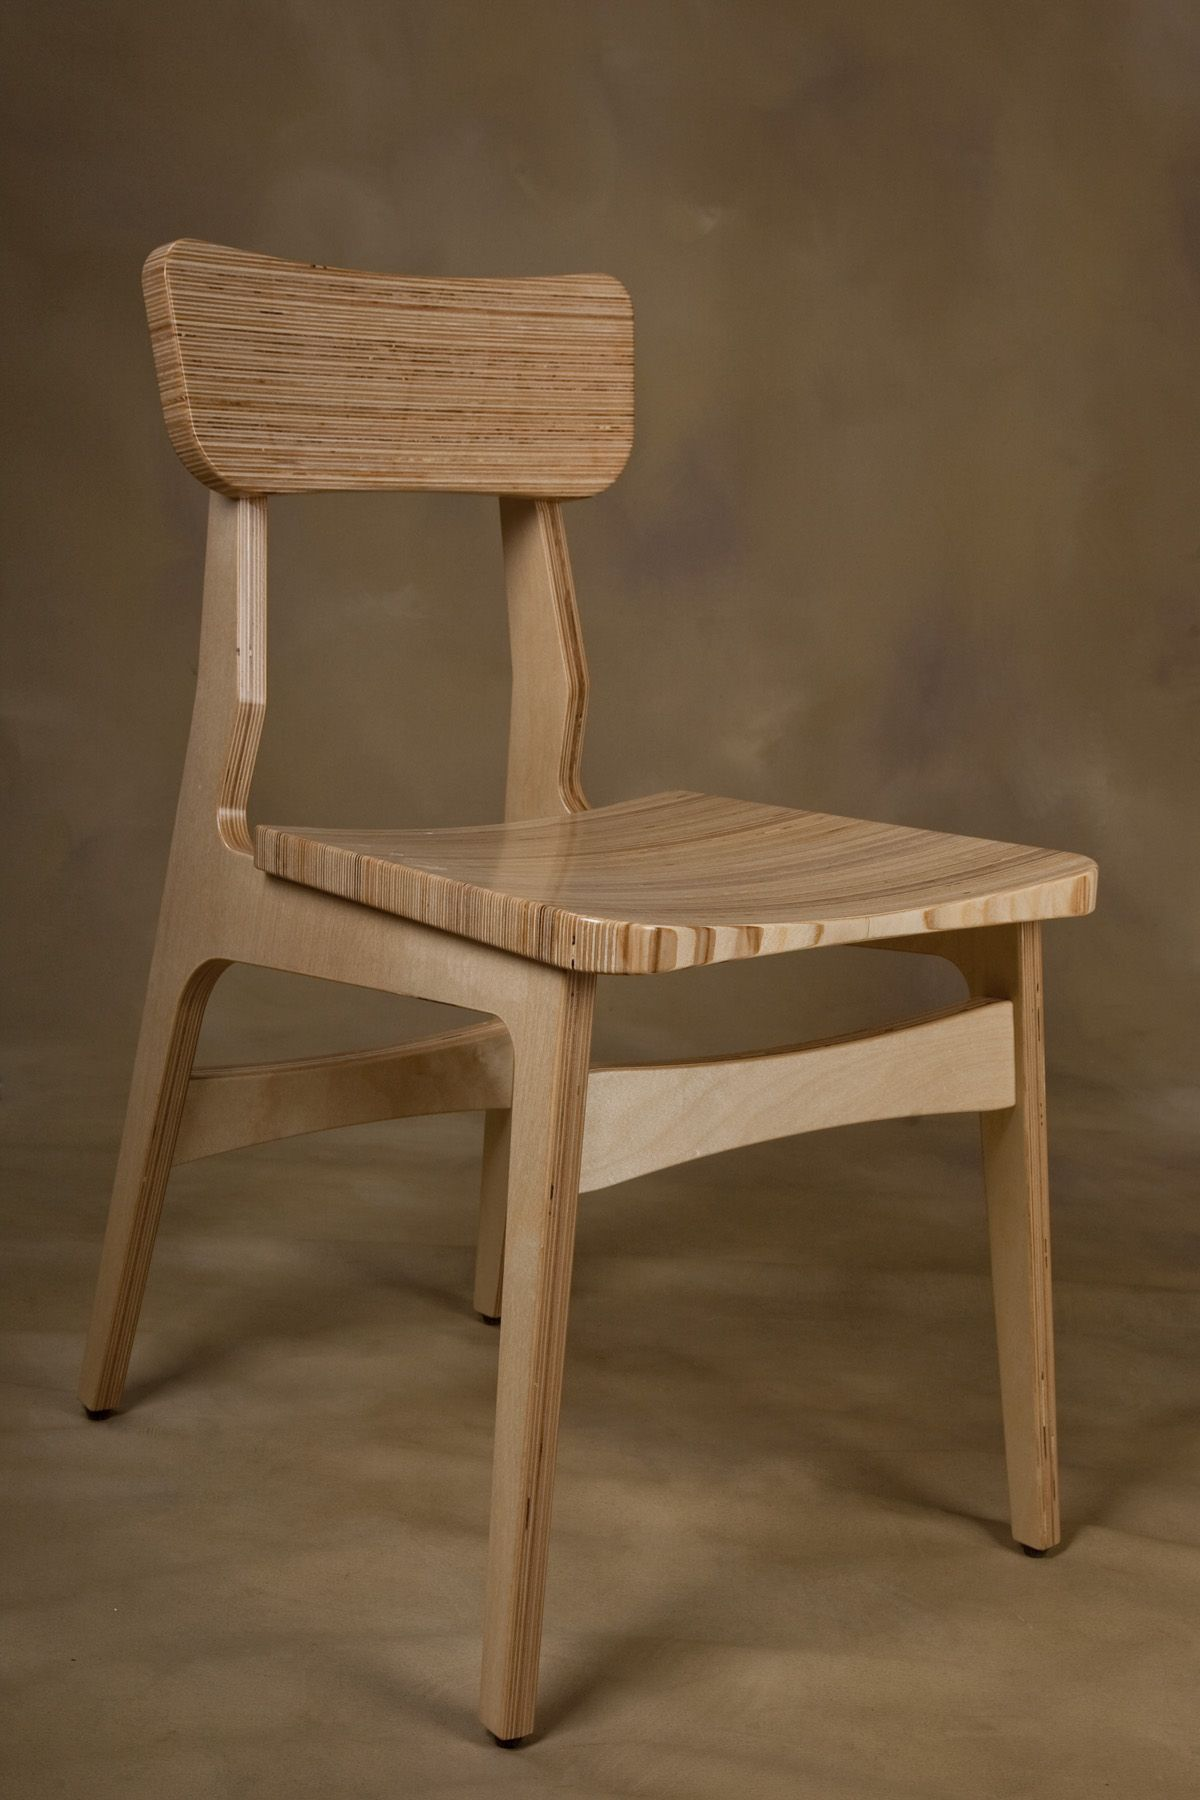 Baltic Birch Plywood Chair By Tyler Morris, Fort Collins Co